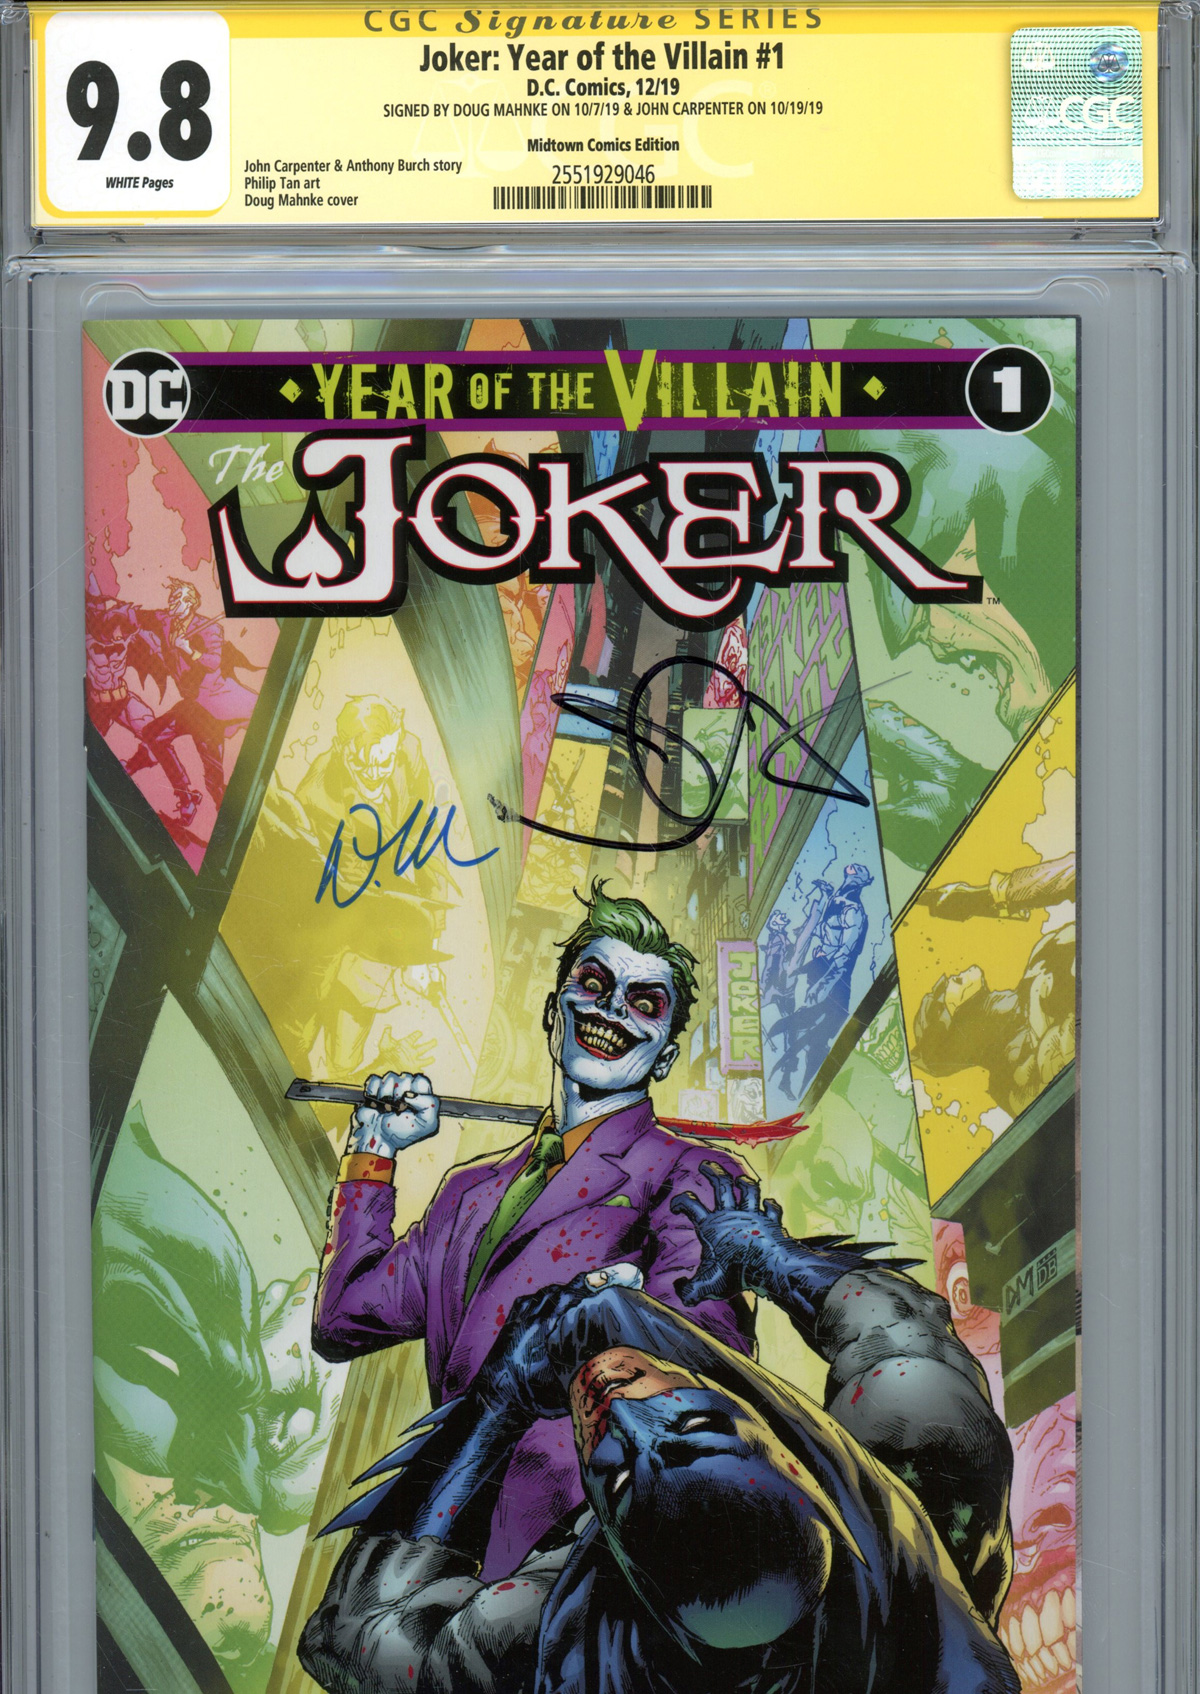 Joker Year Of The Villain #1  Midtown Exclusive Doug Mahnke Variant Cover Signed By Doug Mahnke & John Carpenter CGC 9.8